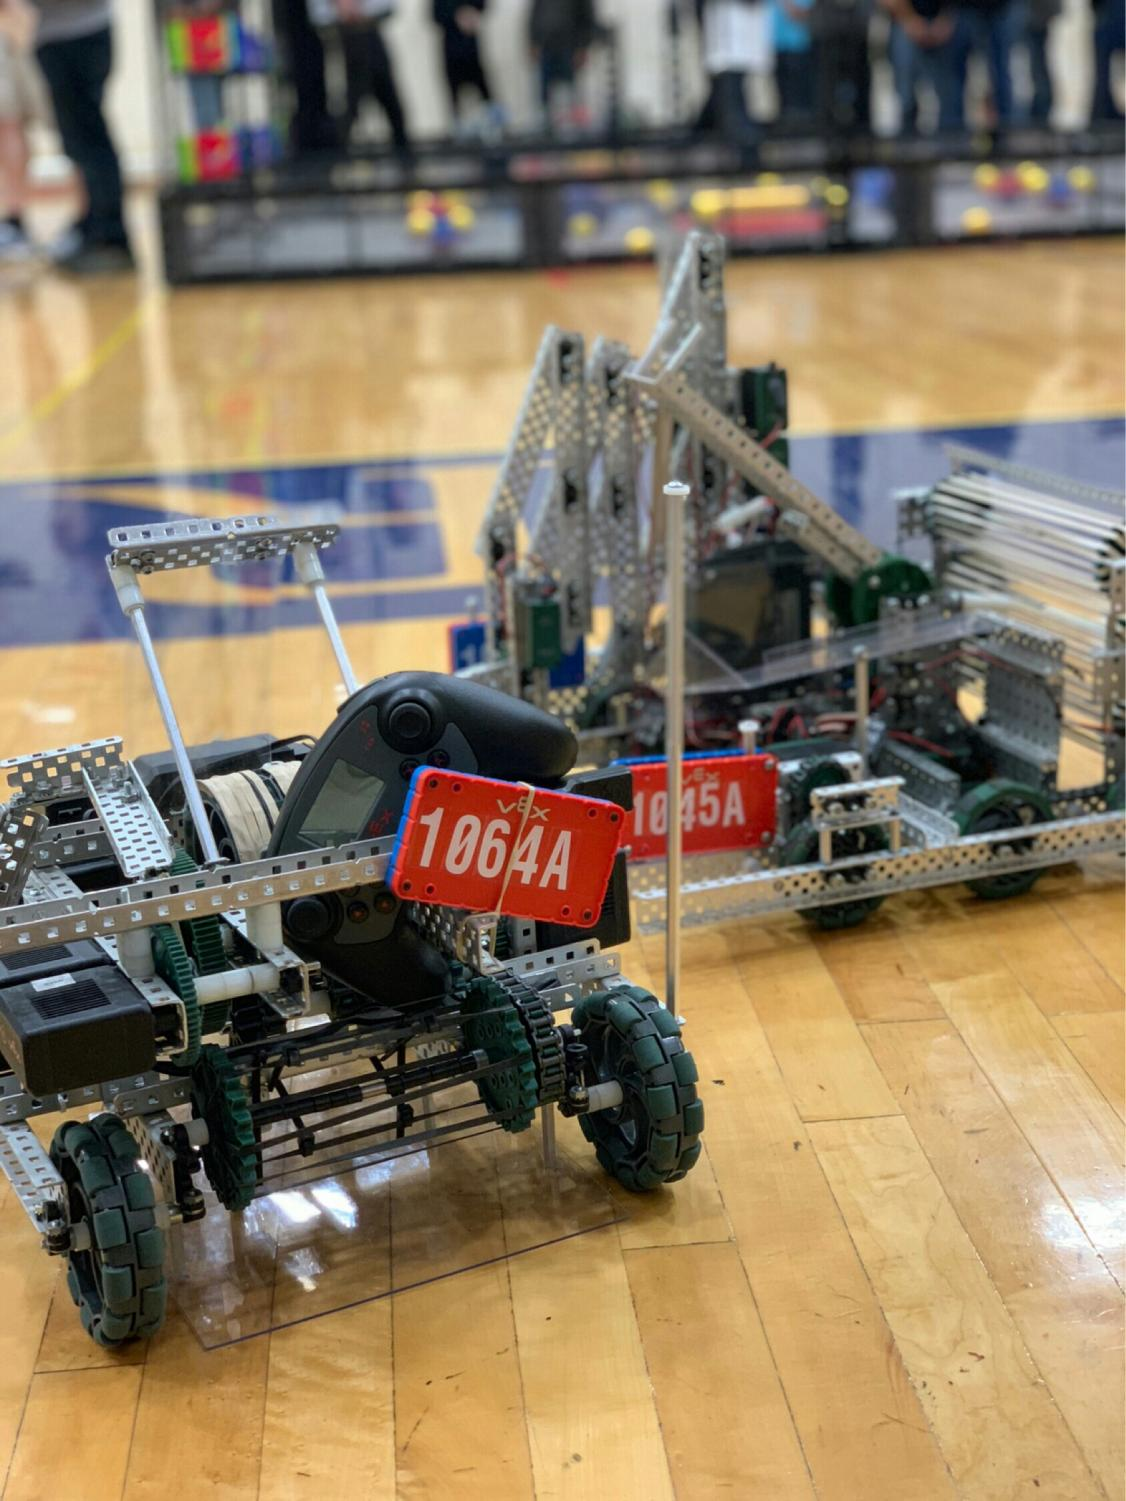 This is team 1064A's robot. Members of Team 1064A include Matt Nevarez, Joseph Perez, Kalvin Green and Noah Landis. Photo courtesy of Noah Landis